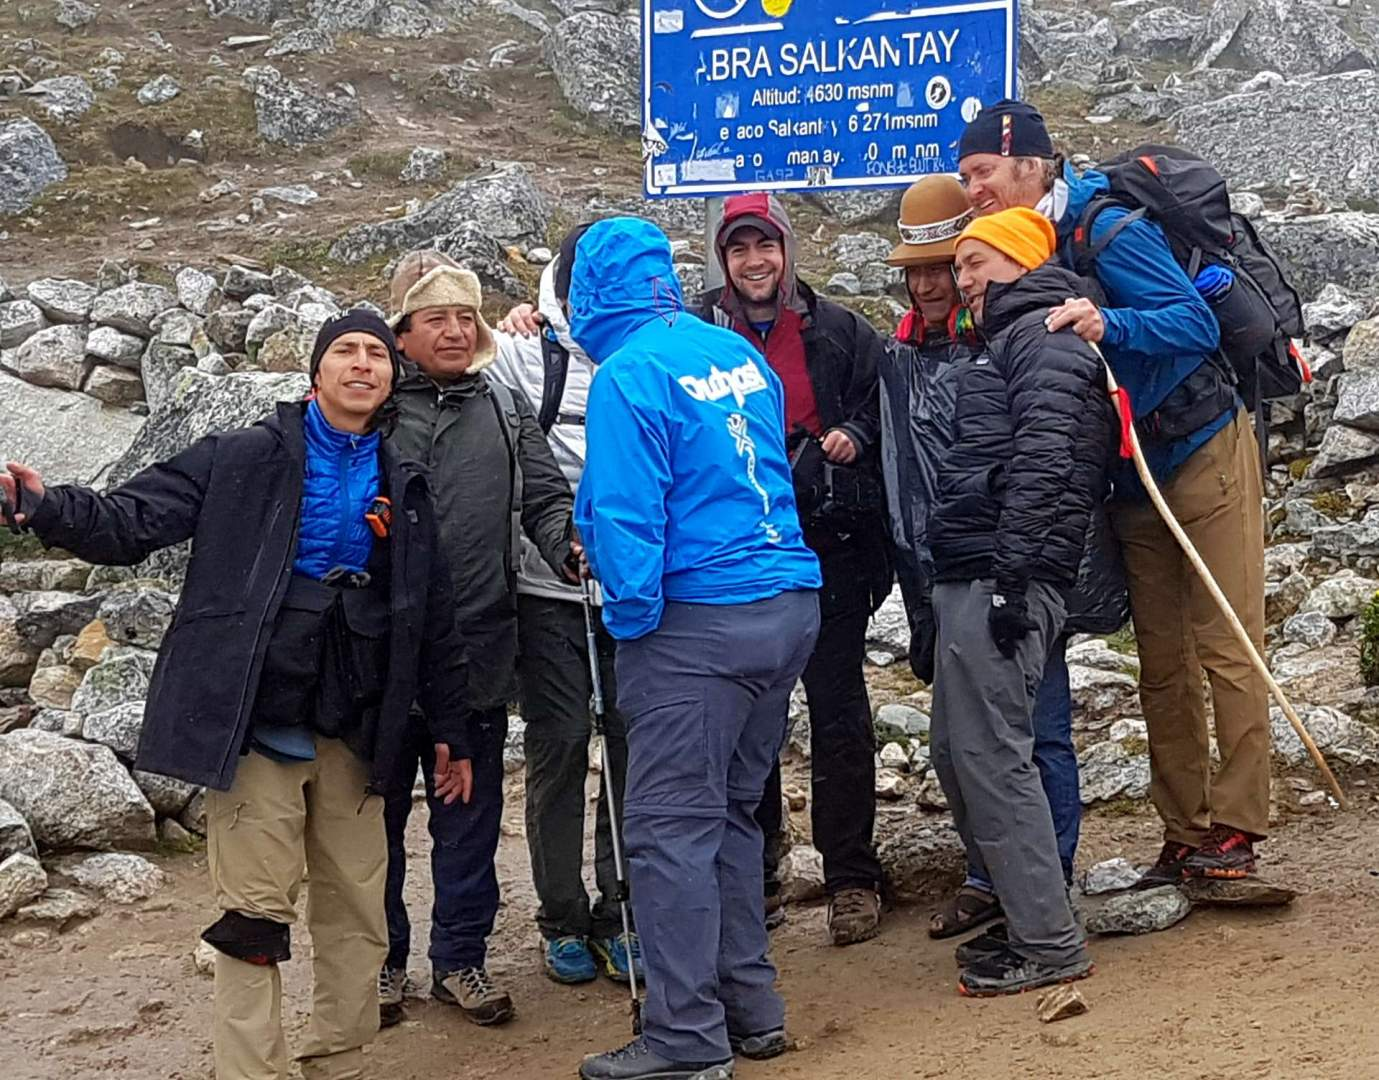 Team Outpost at the Salkantay Pass, the highest point of the trek